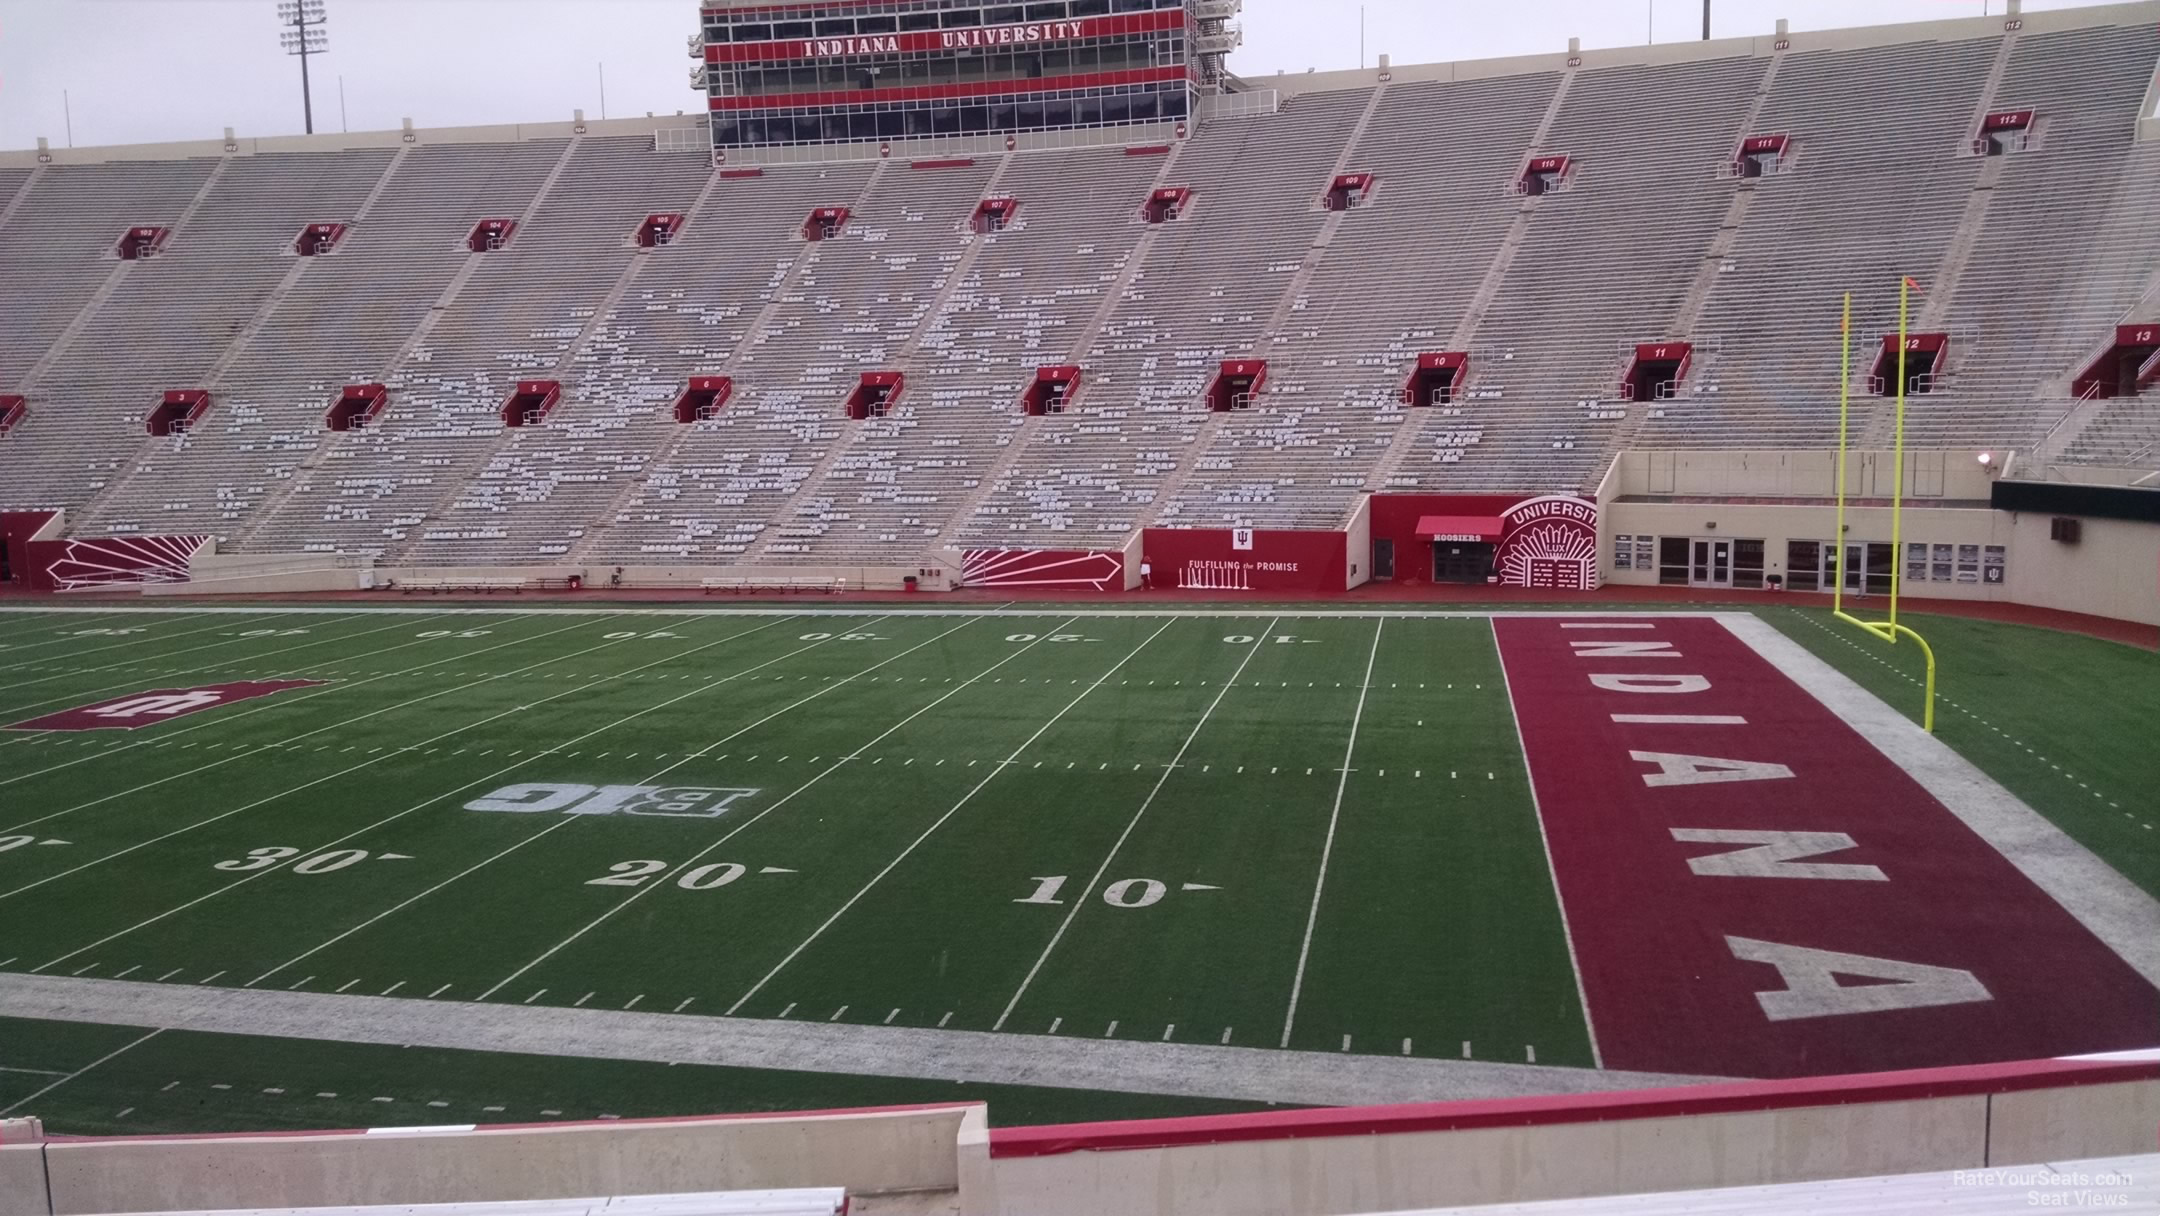 Seat View for Memorial Stadium - IN Section 23, Row 30